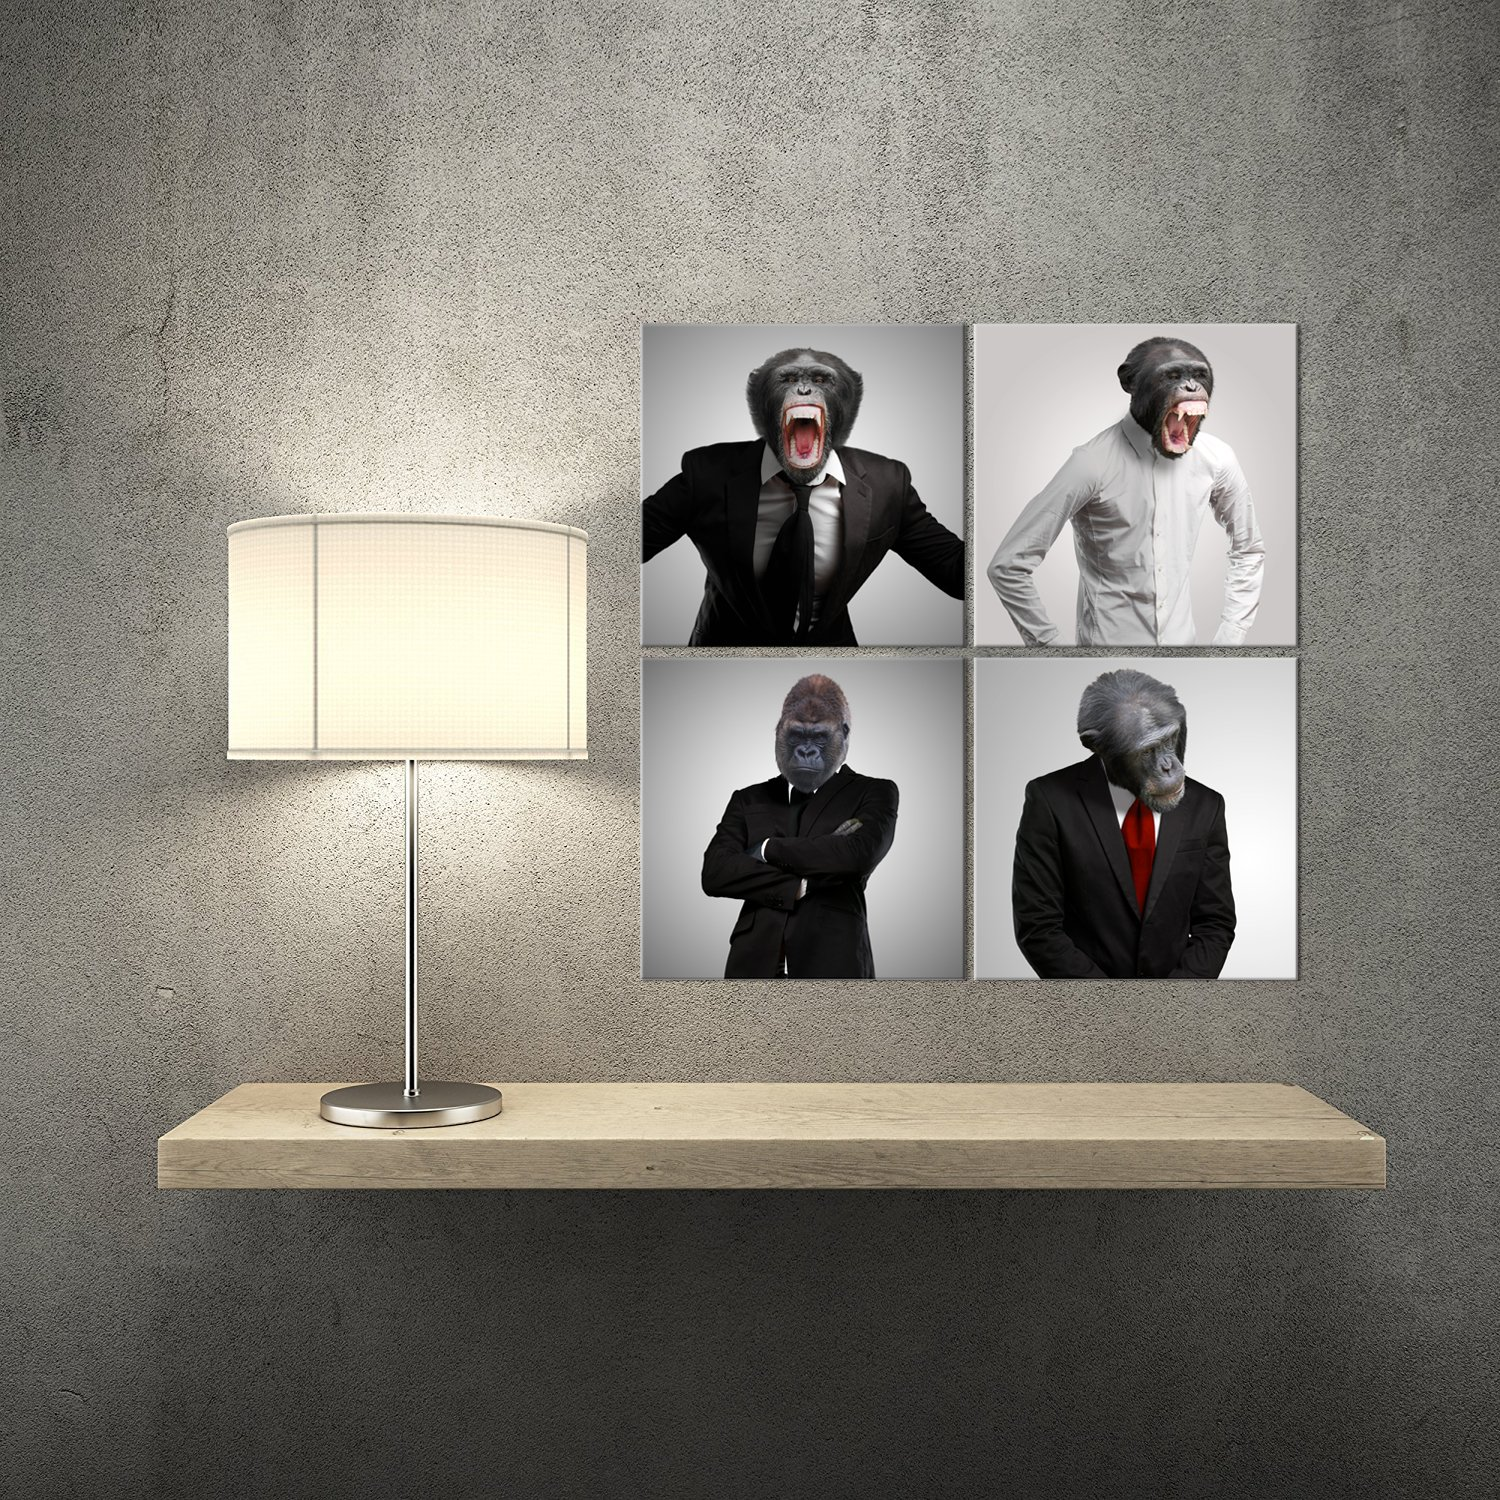 Amazon.com: Kolo Wall Art Funny Gorilla White Collar imagen ...